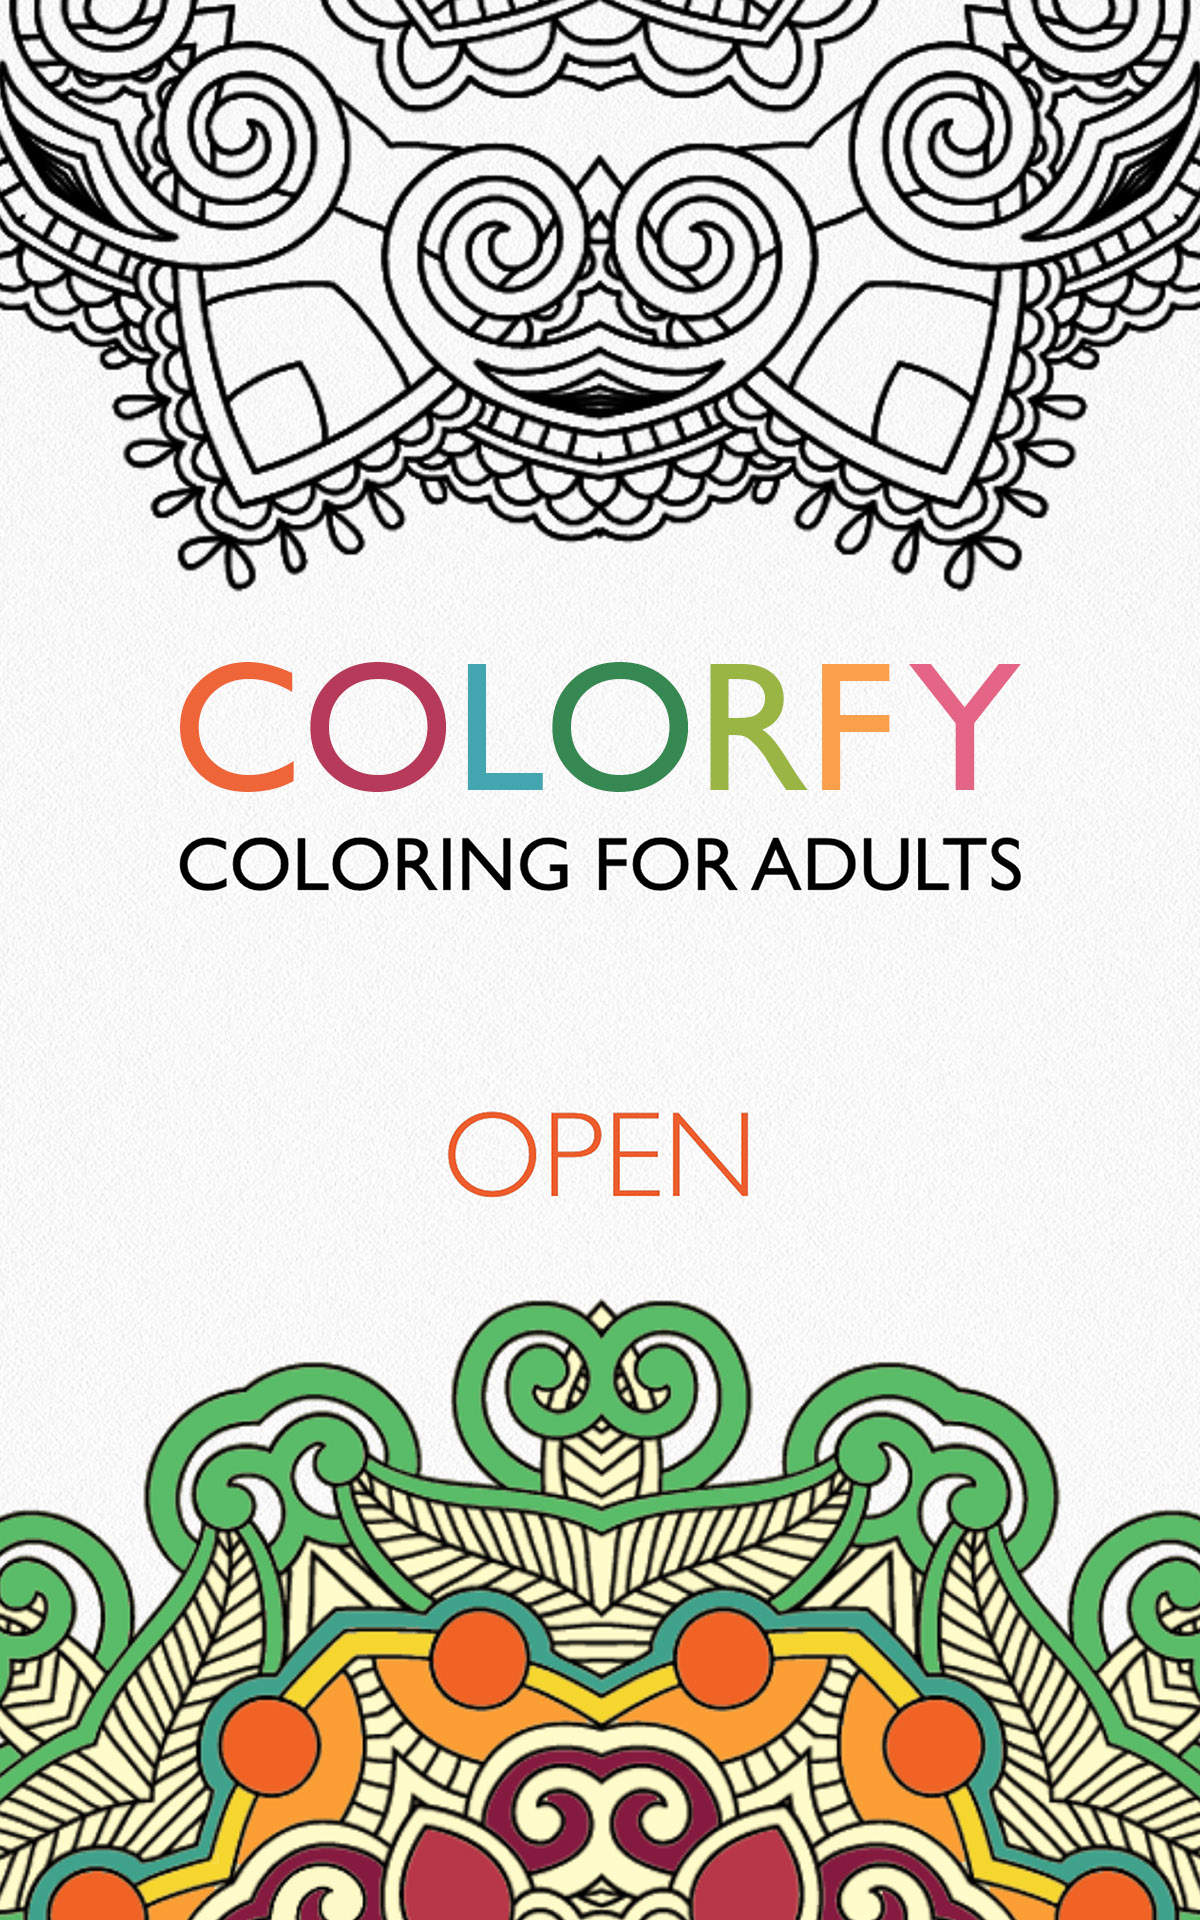 Colorfy coloring book for adults free Coloring book for adults android